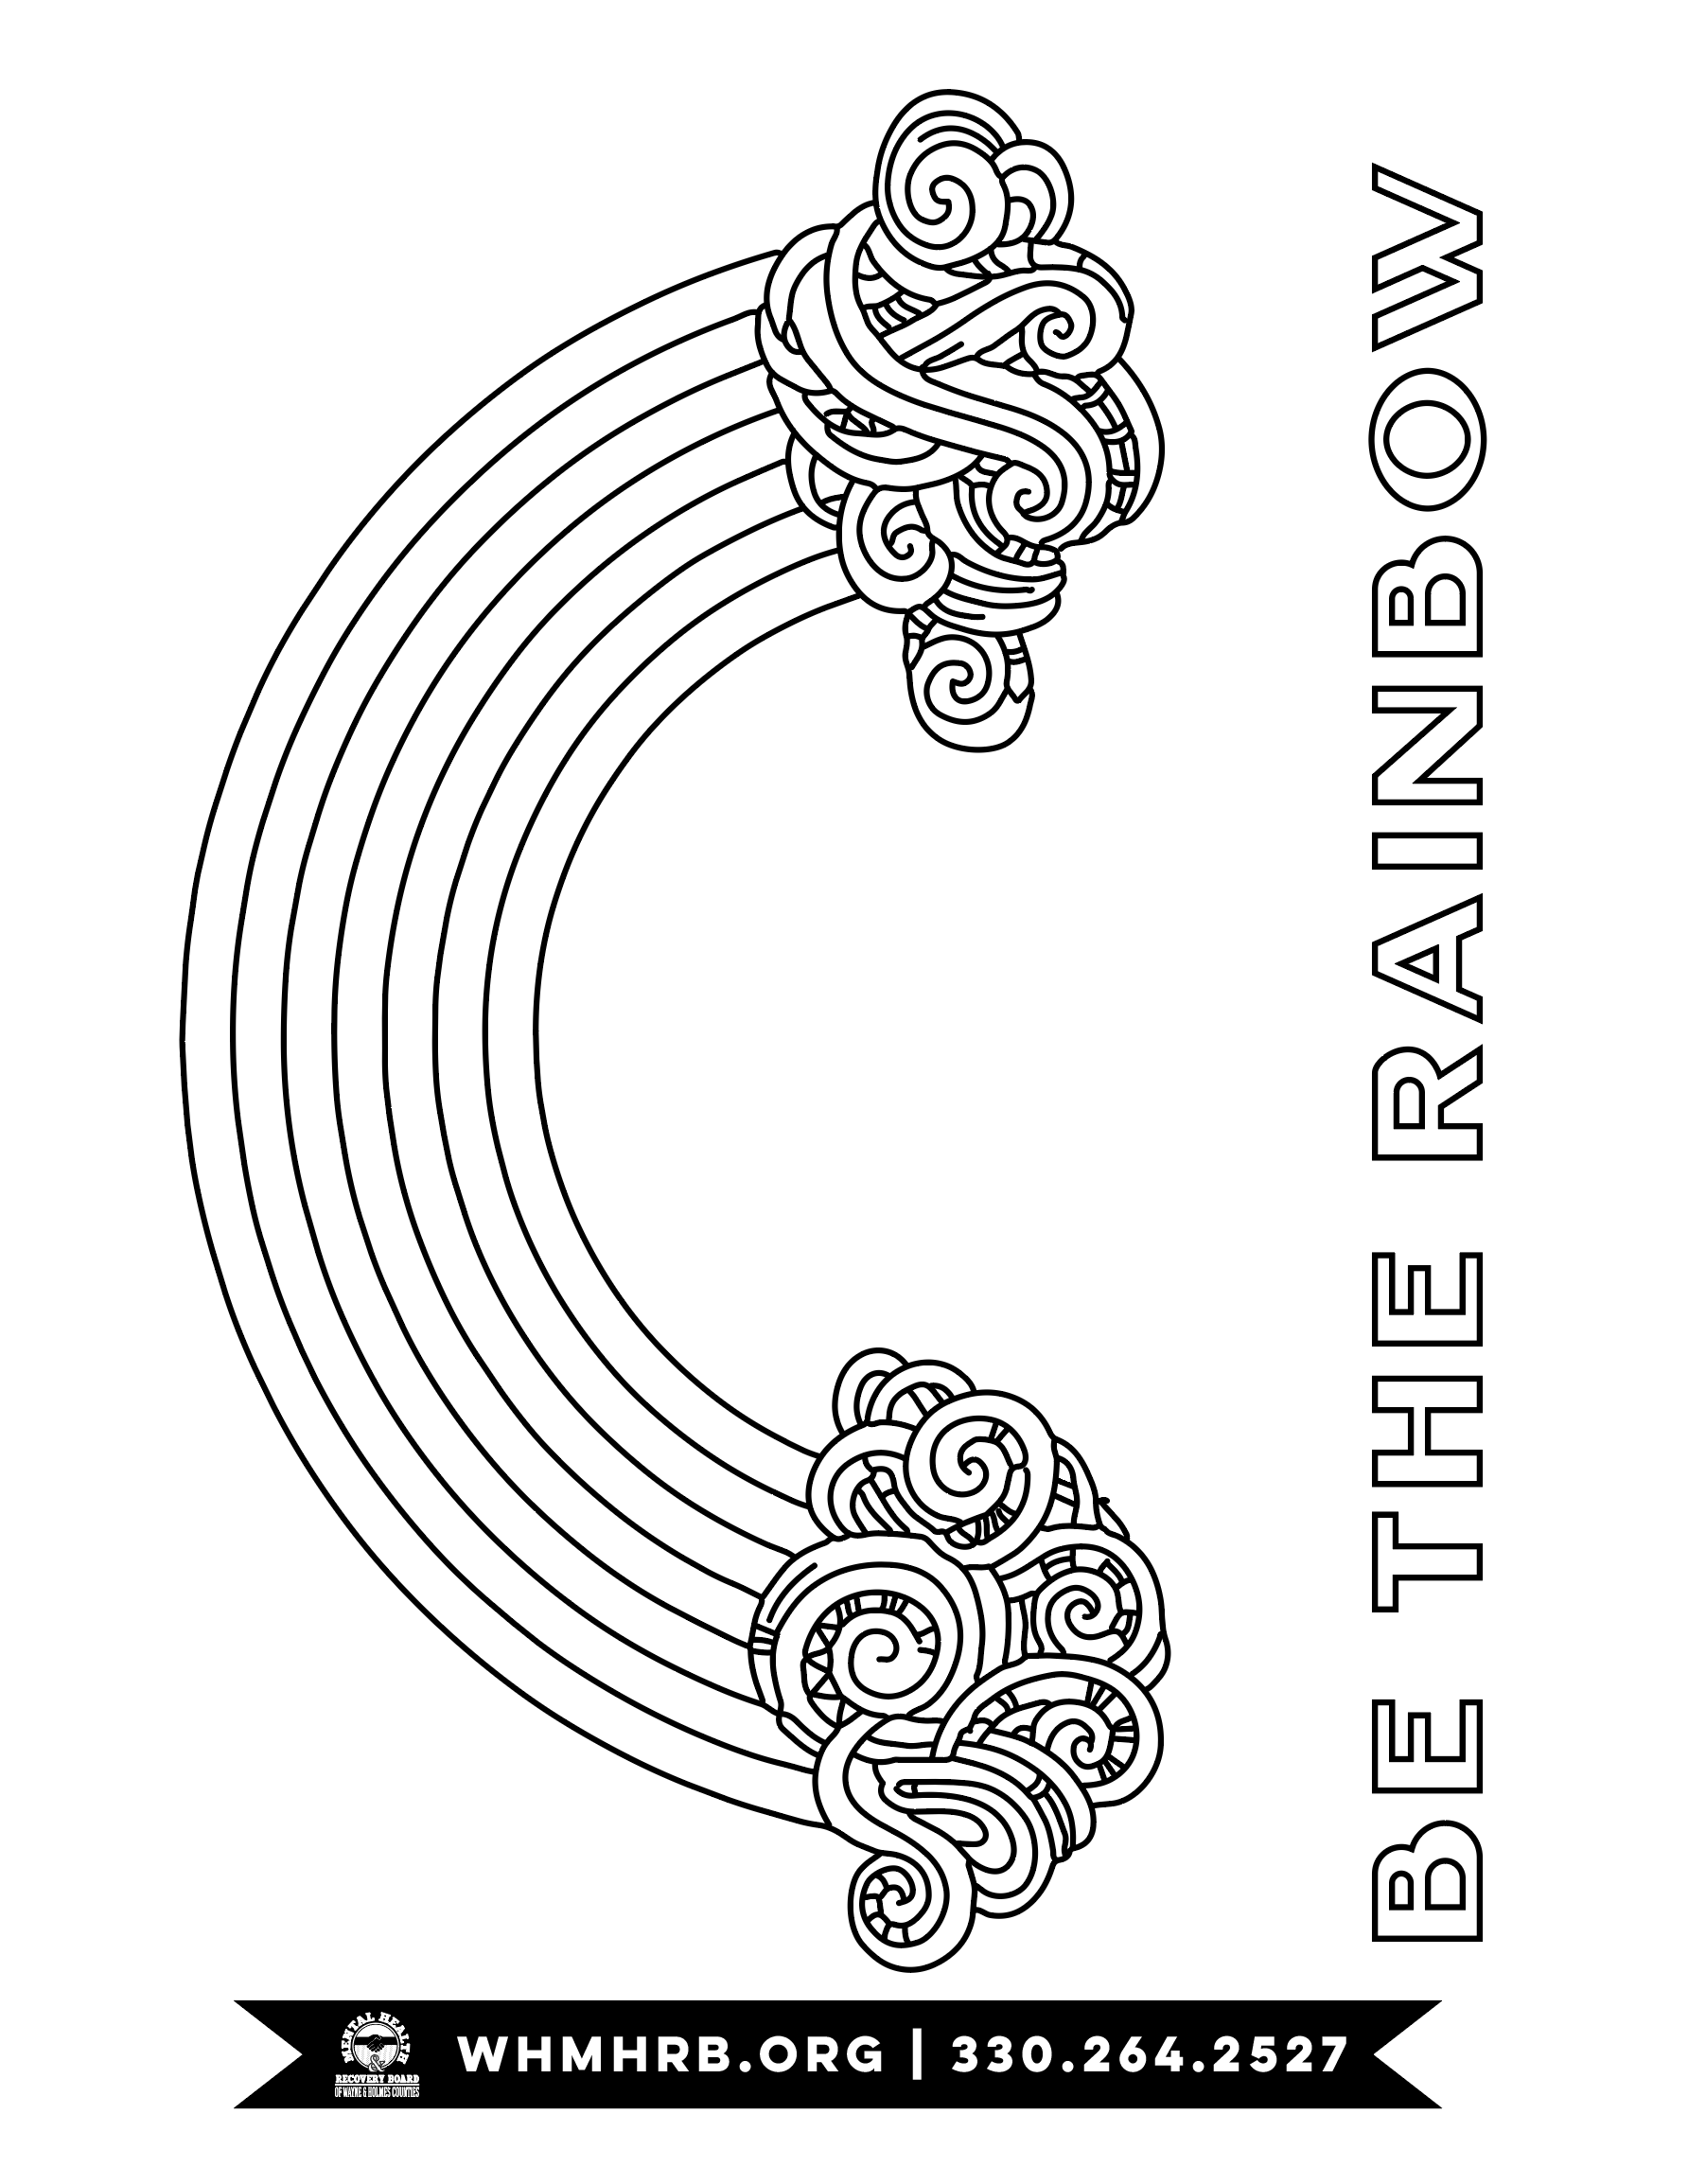 Pin on Mindfulness Coloring Pages